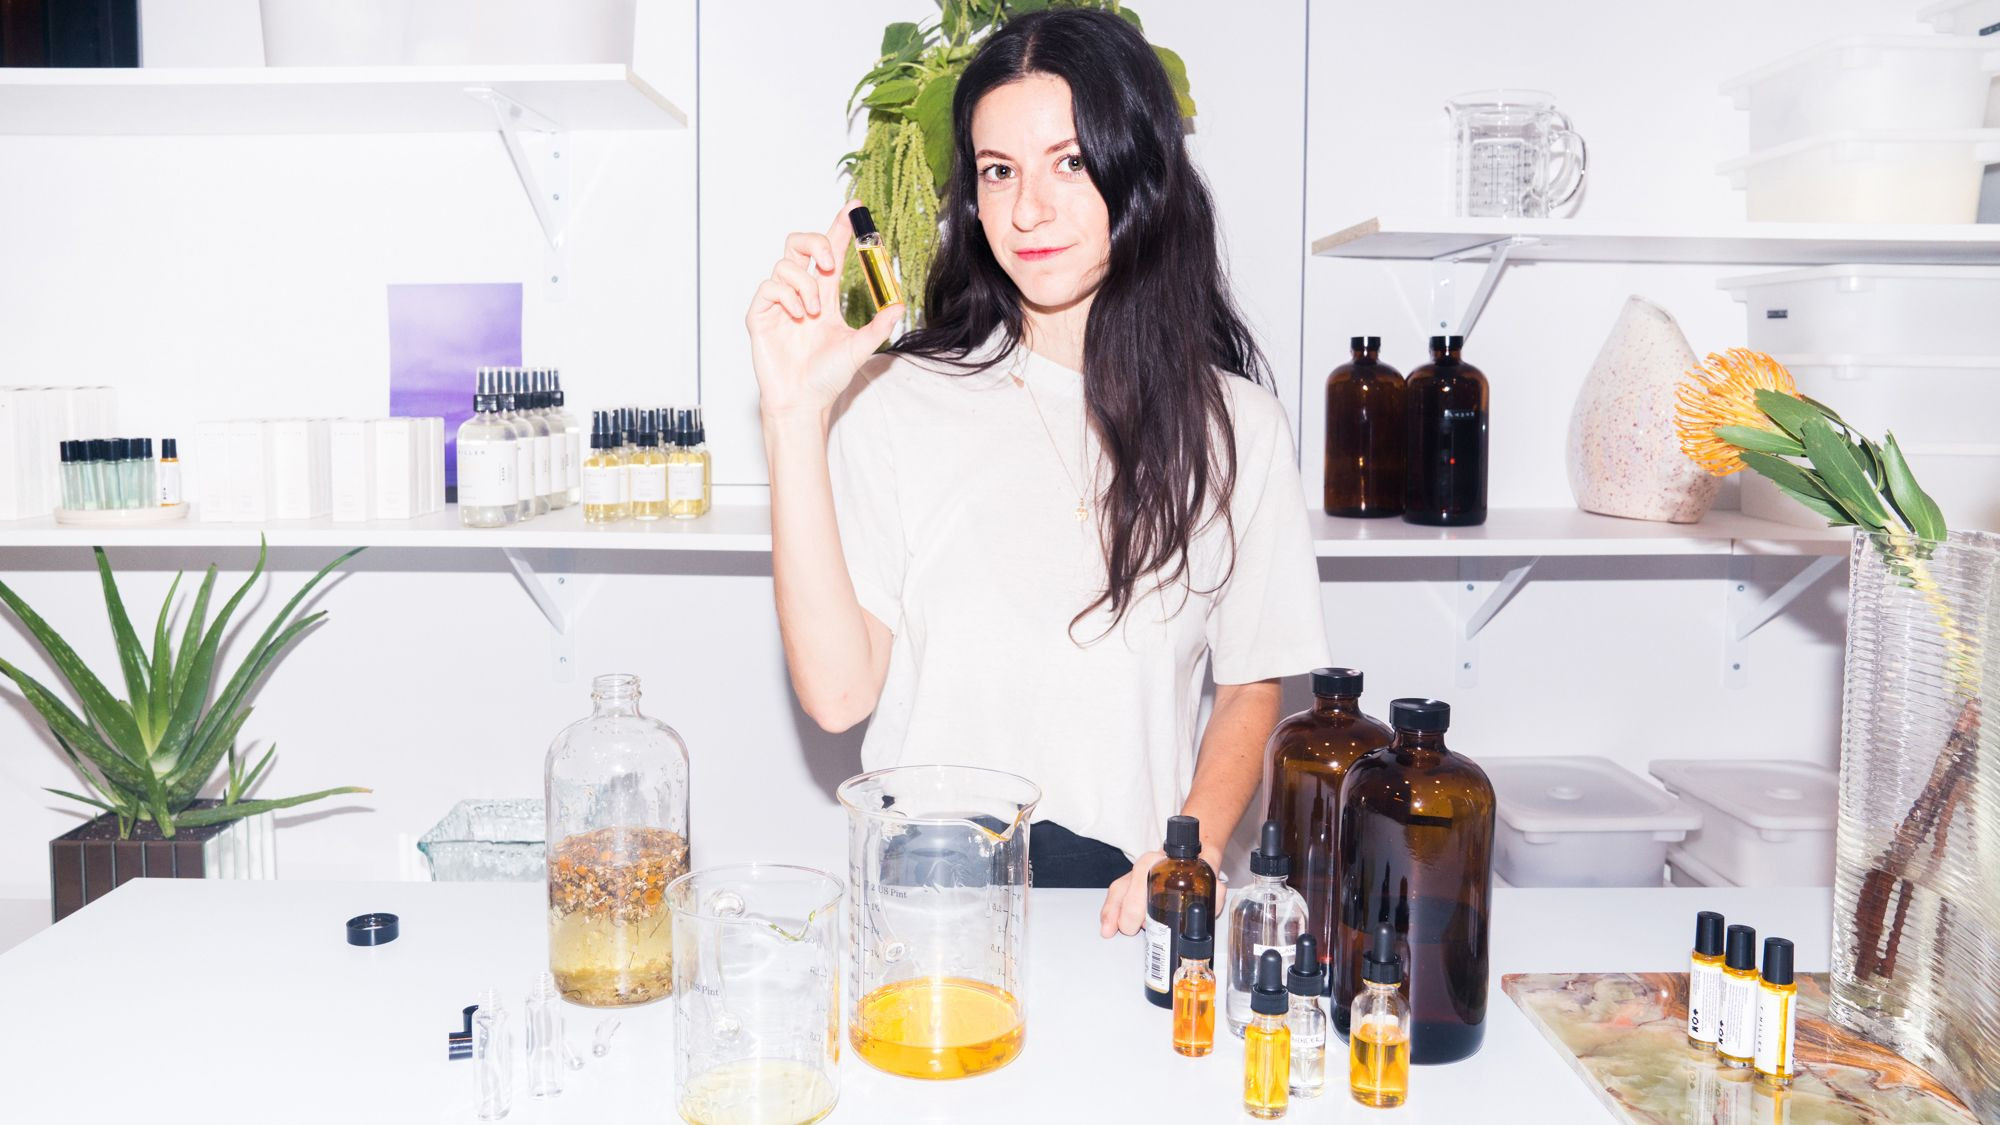 A Natural Beauty Founder On Acne Scars, Eye Oil & Her Favorite DIY Facemask